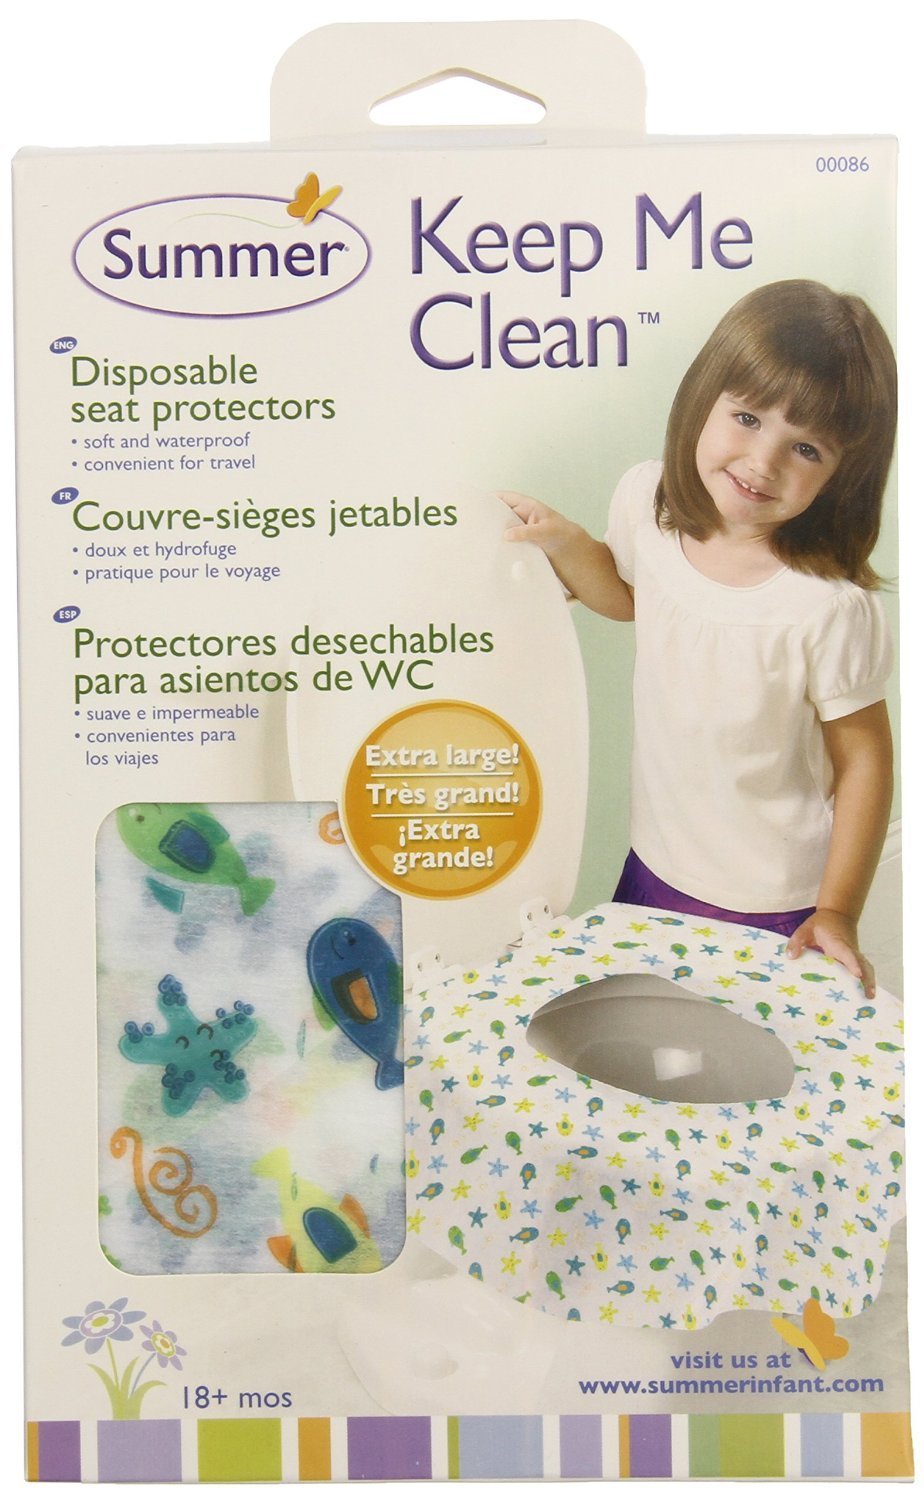 Summer Infant Keep Me Clean Disposable Potty Protectors, Green/White, 40-Count